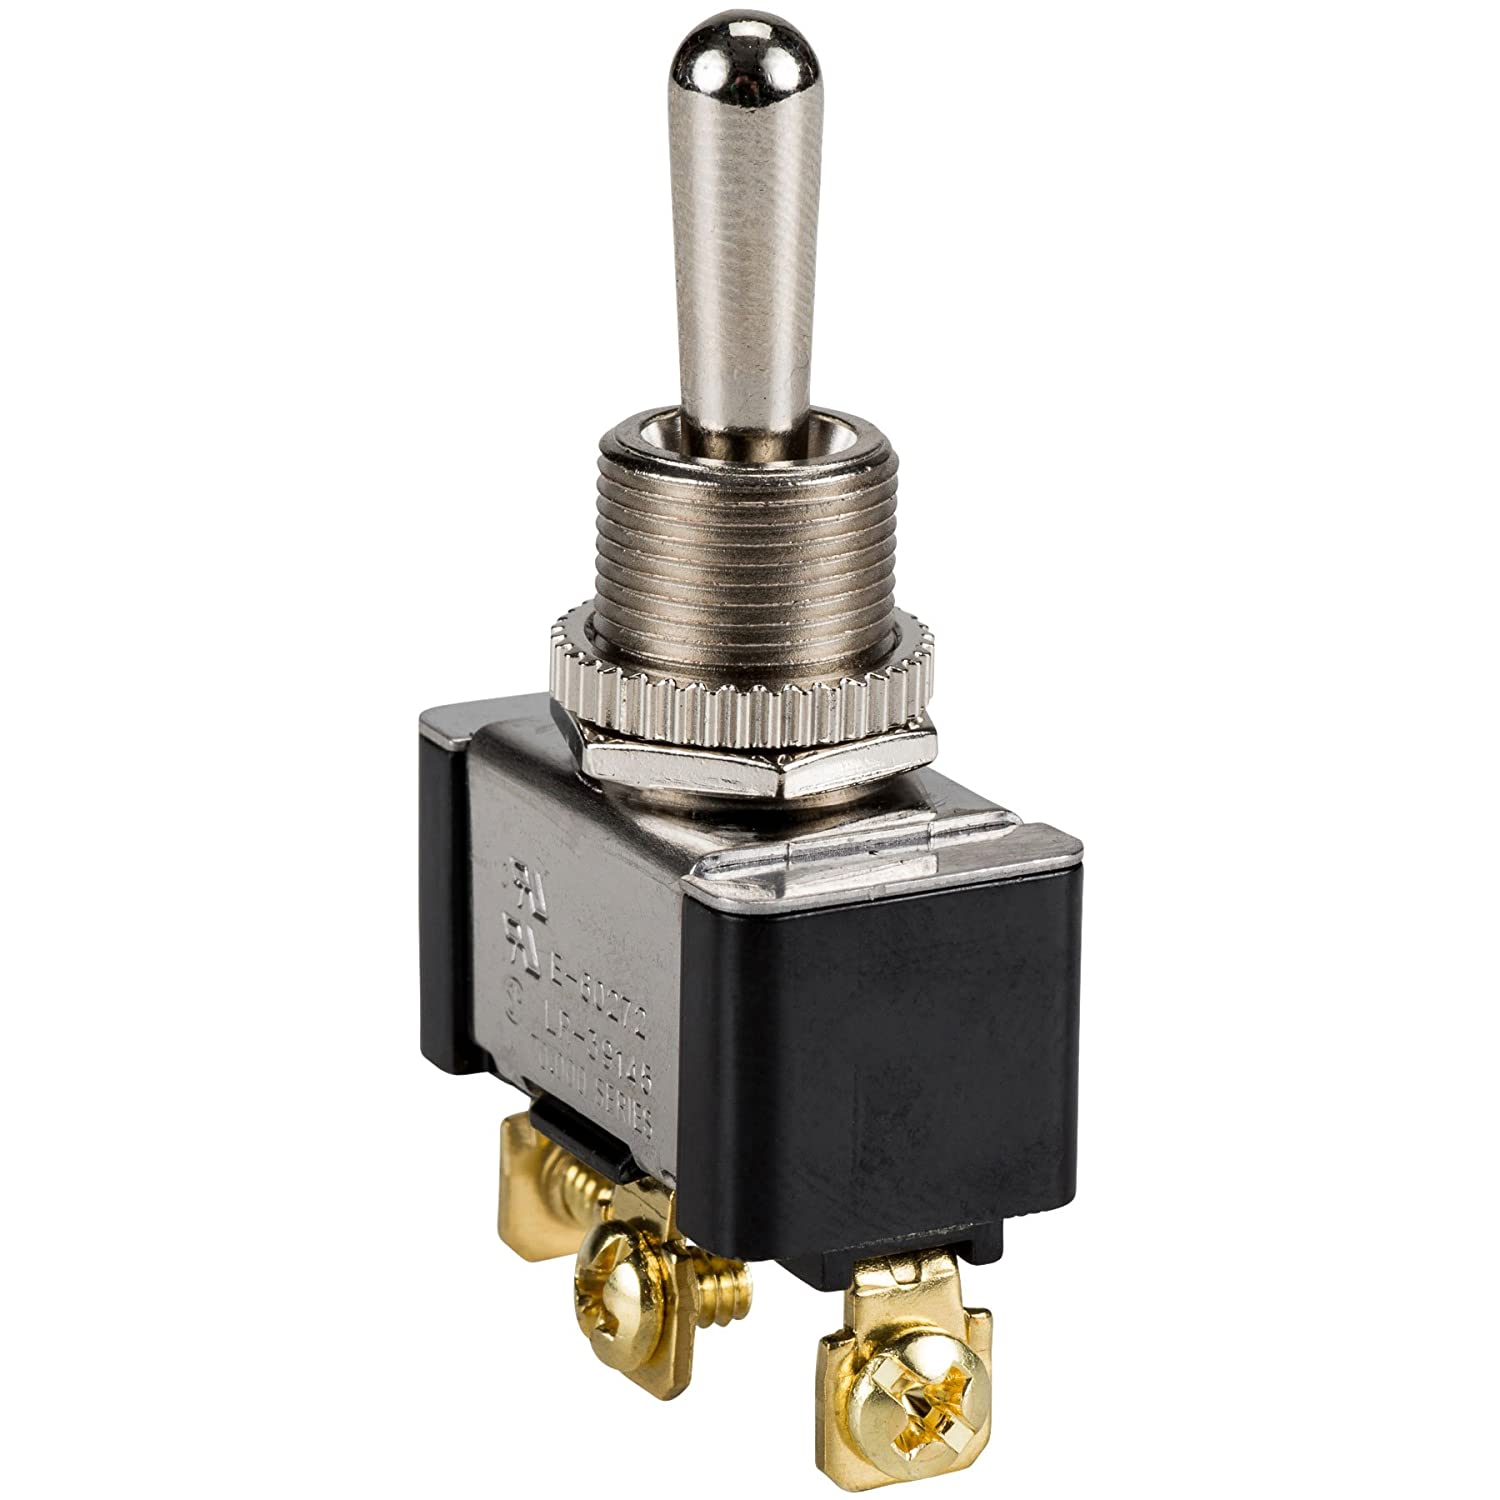 Parts Express SPDT Heavy Duty Toggle Switch Center Off Momentary